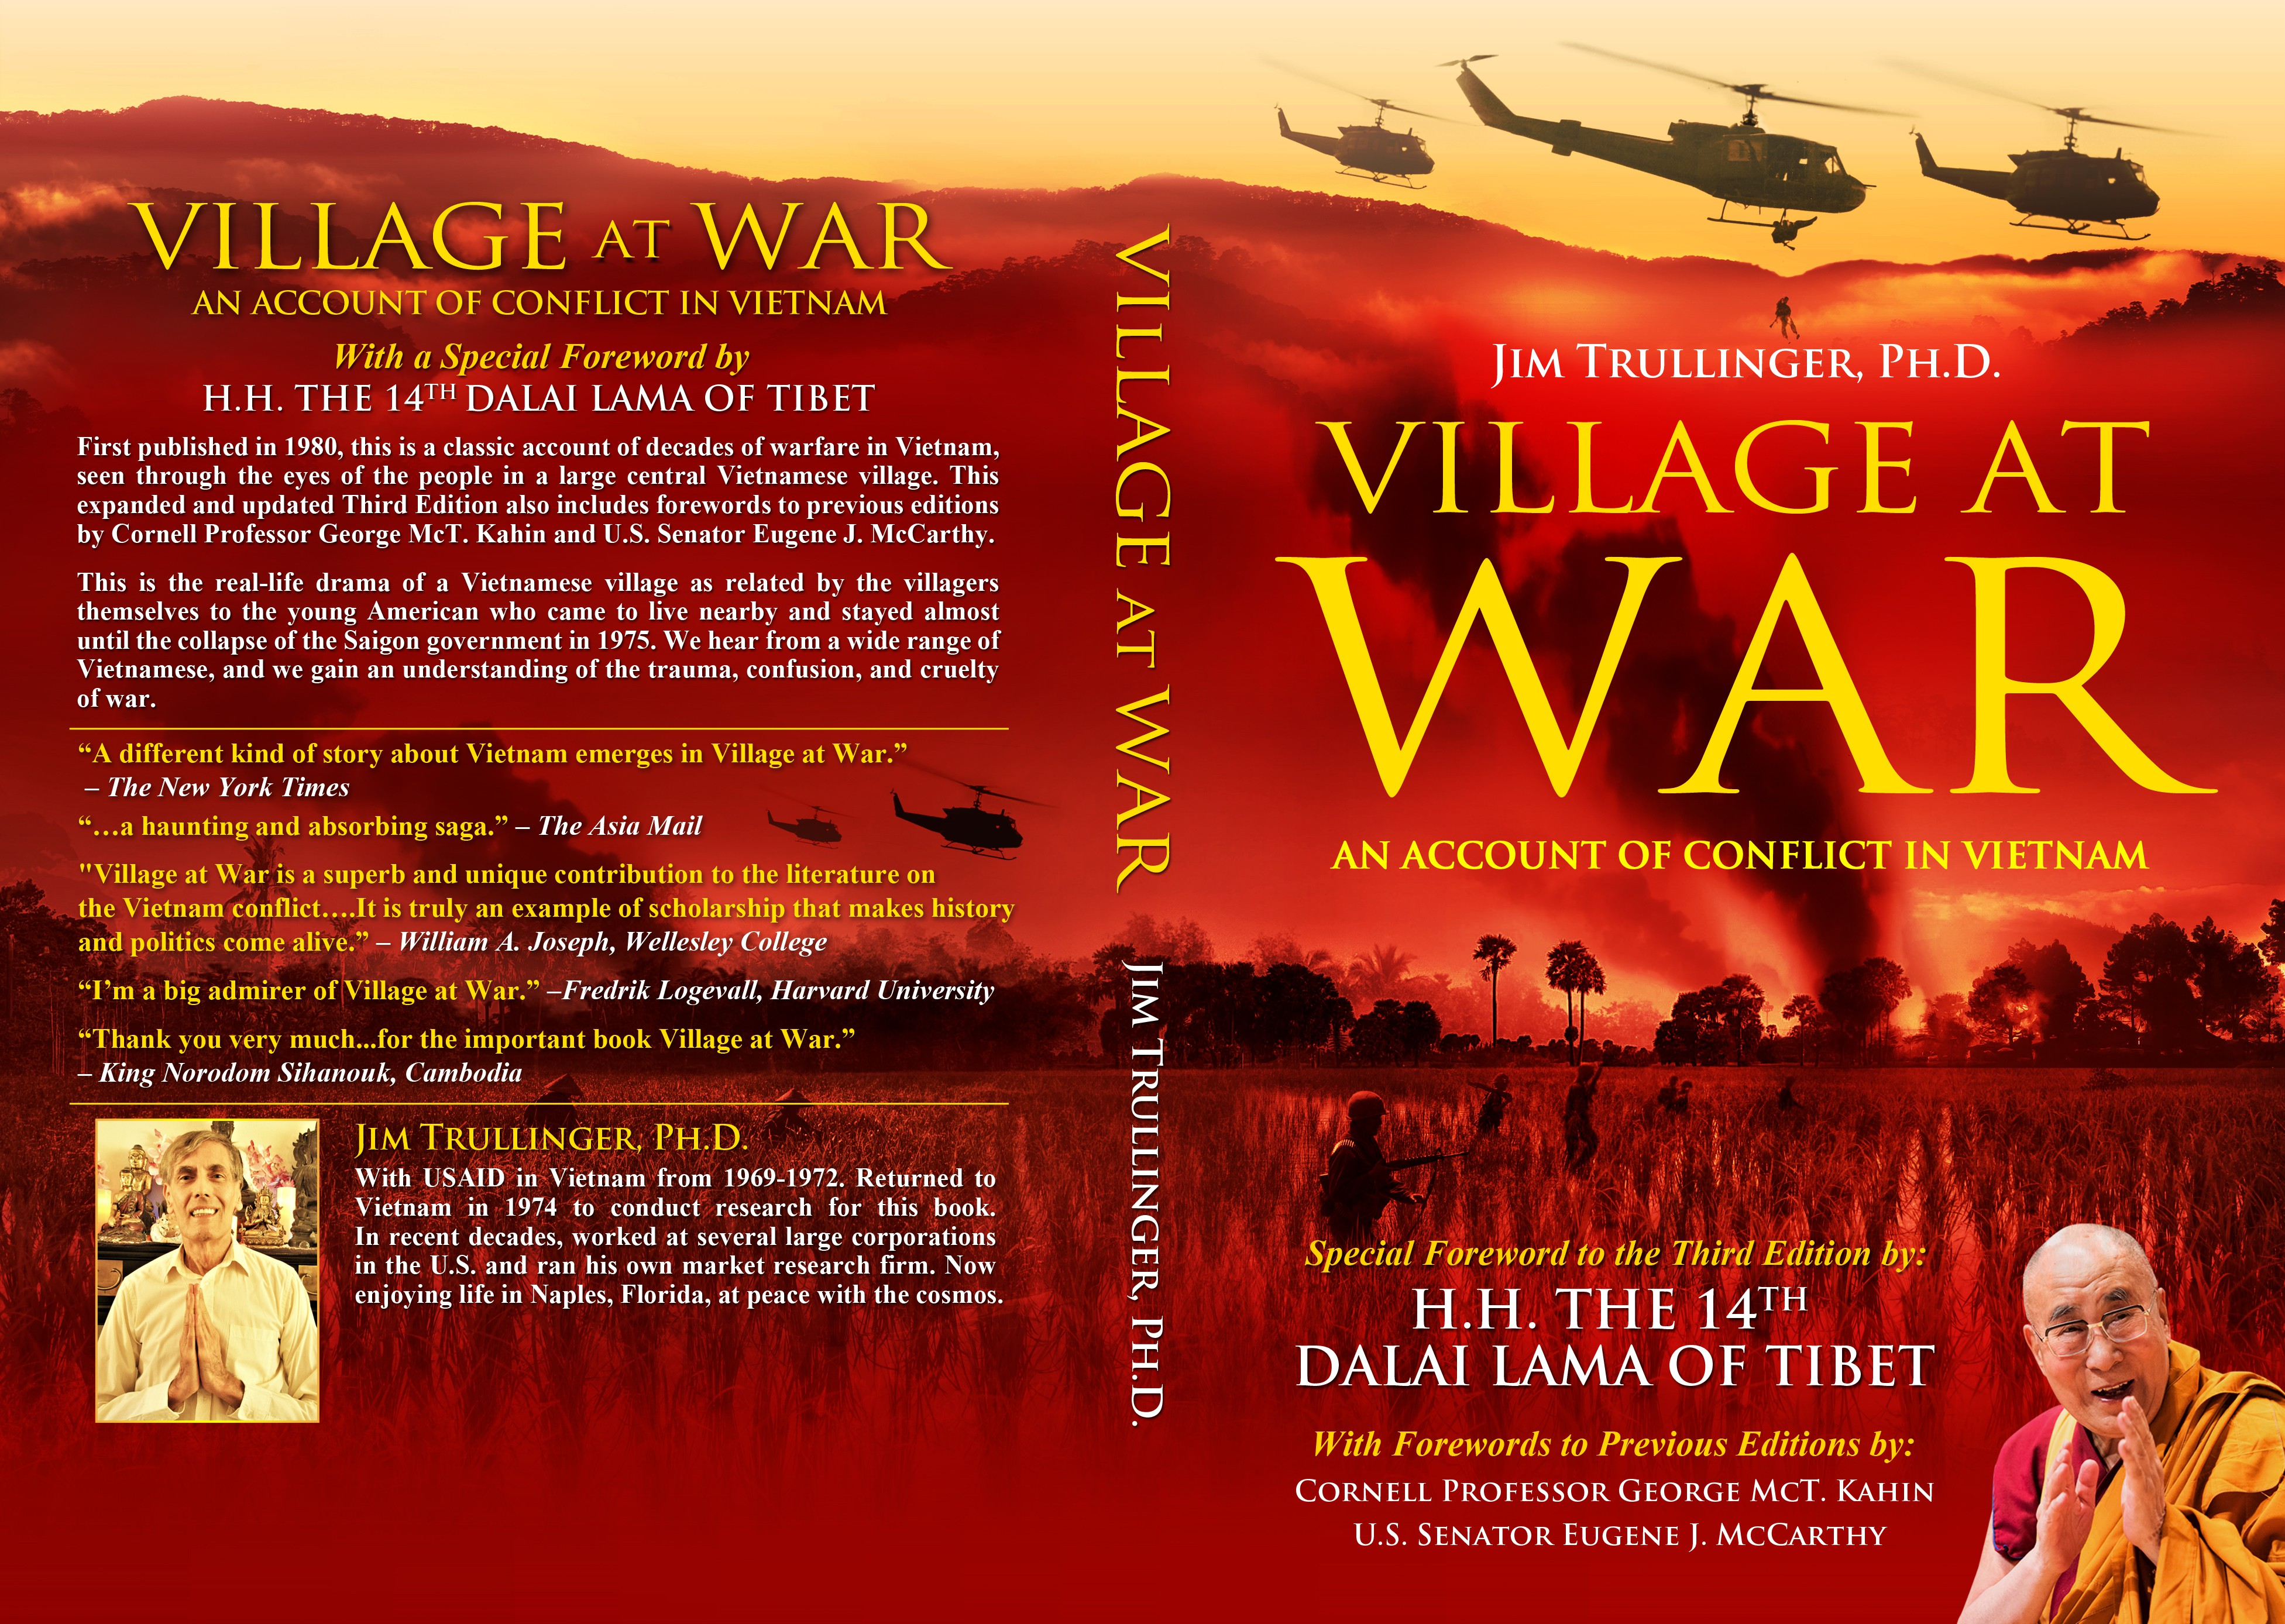 Cover for Third Edition of Classic Work on the Vietnam War. Special Foreword by H.H. the Dalai Lama.